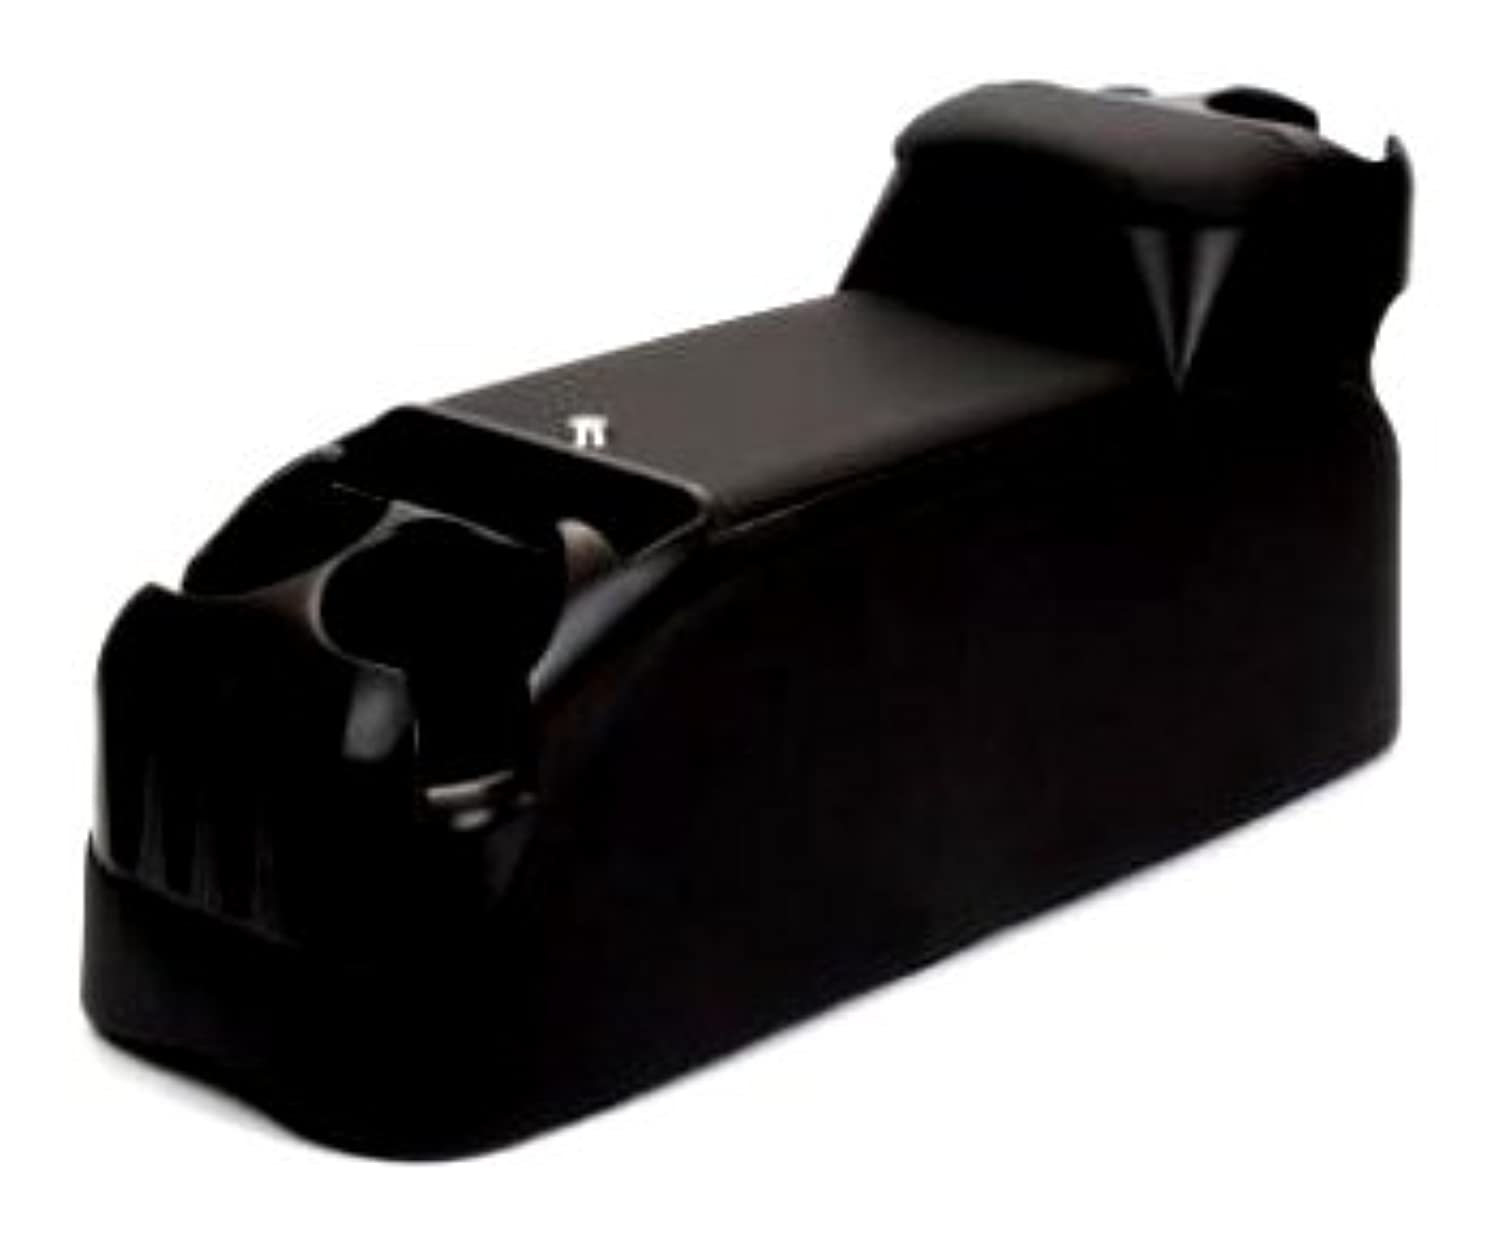 TSI Products 54411 Clutter Catcher Black Upholstered OEM Look Minivan Console